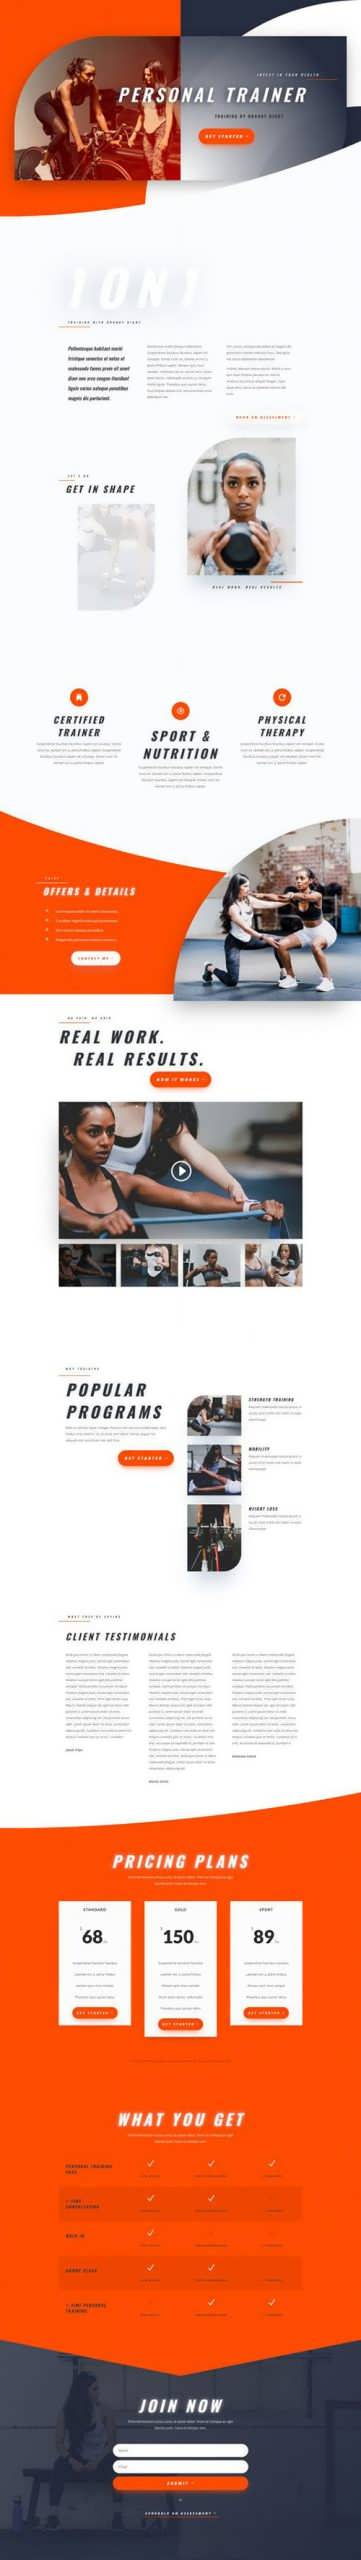 personal trainer landing page scaled